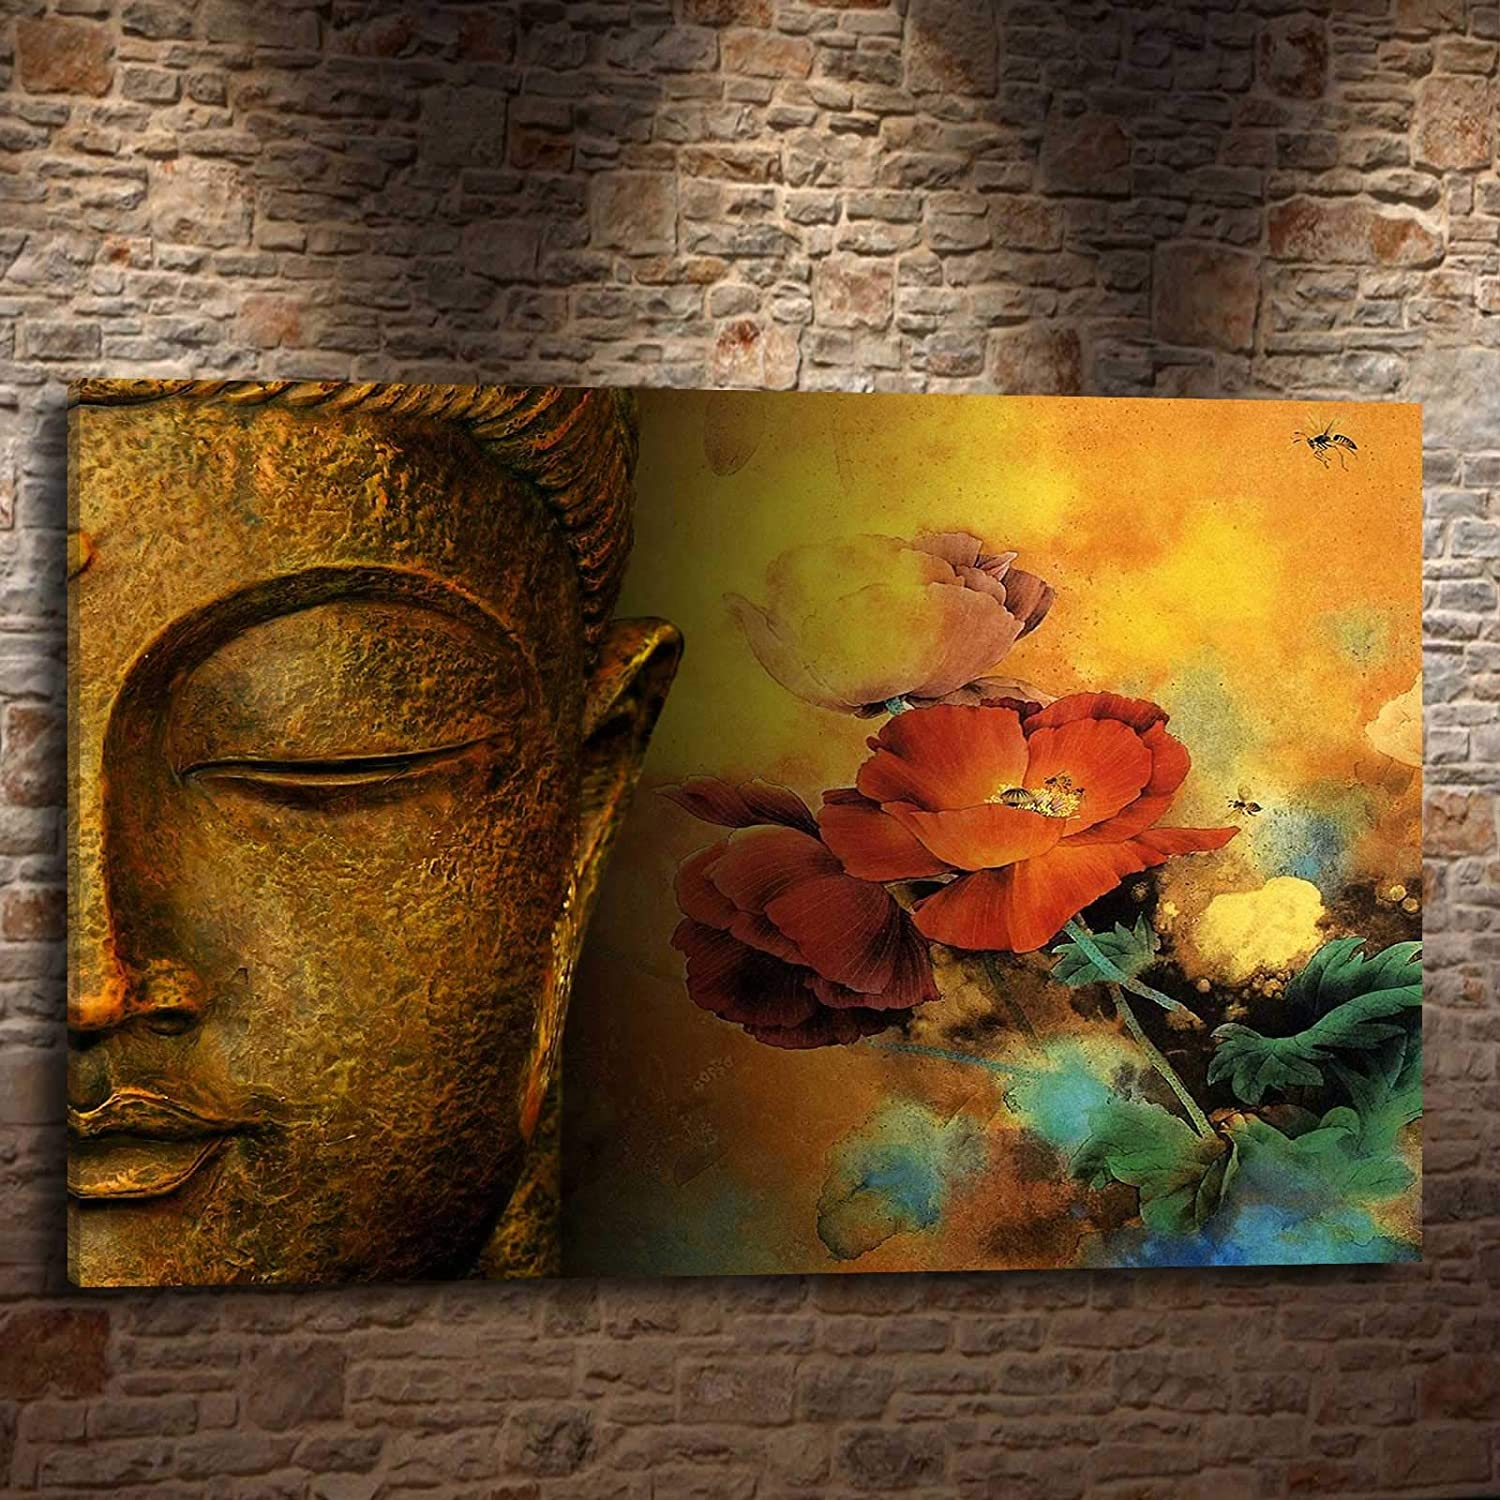 YuFeng Challenge the lowest price Art Inn Modern Wall Poster on Canv 35% OFF Print Oil Painting